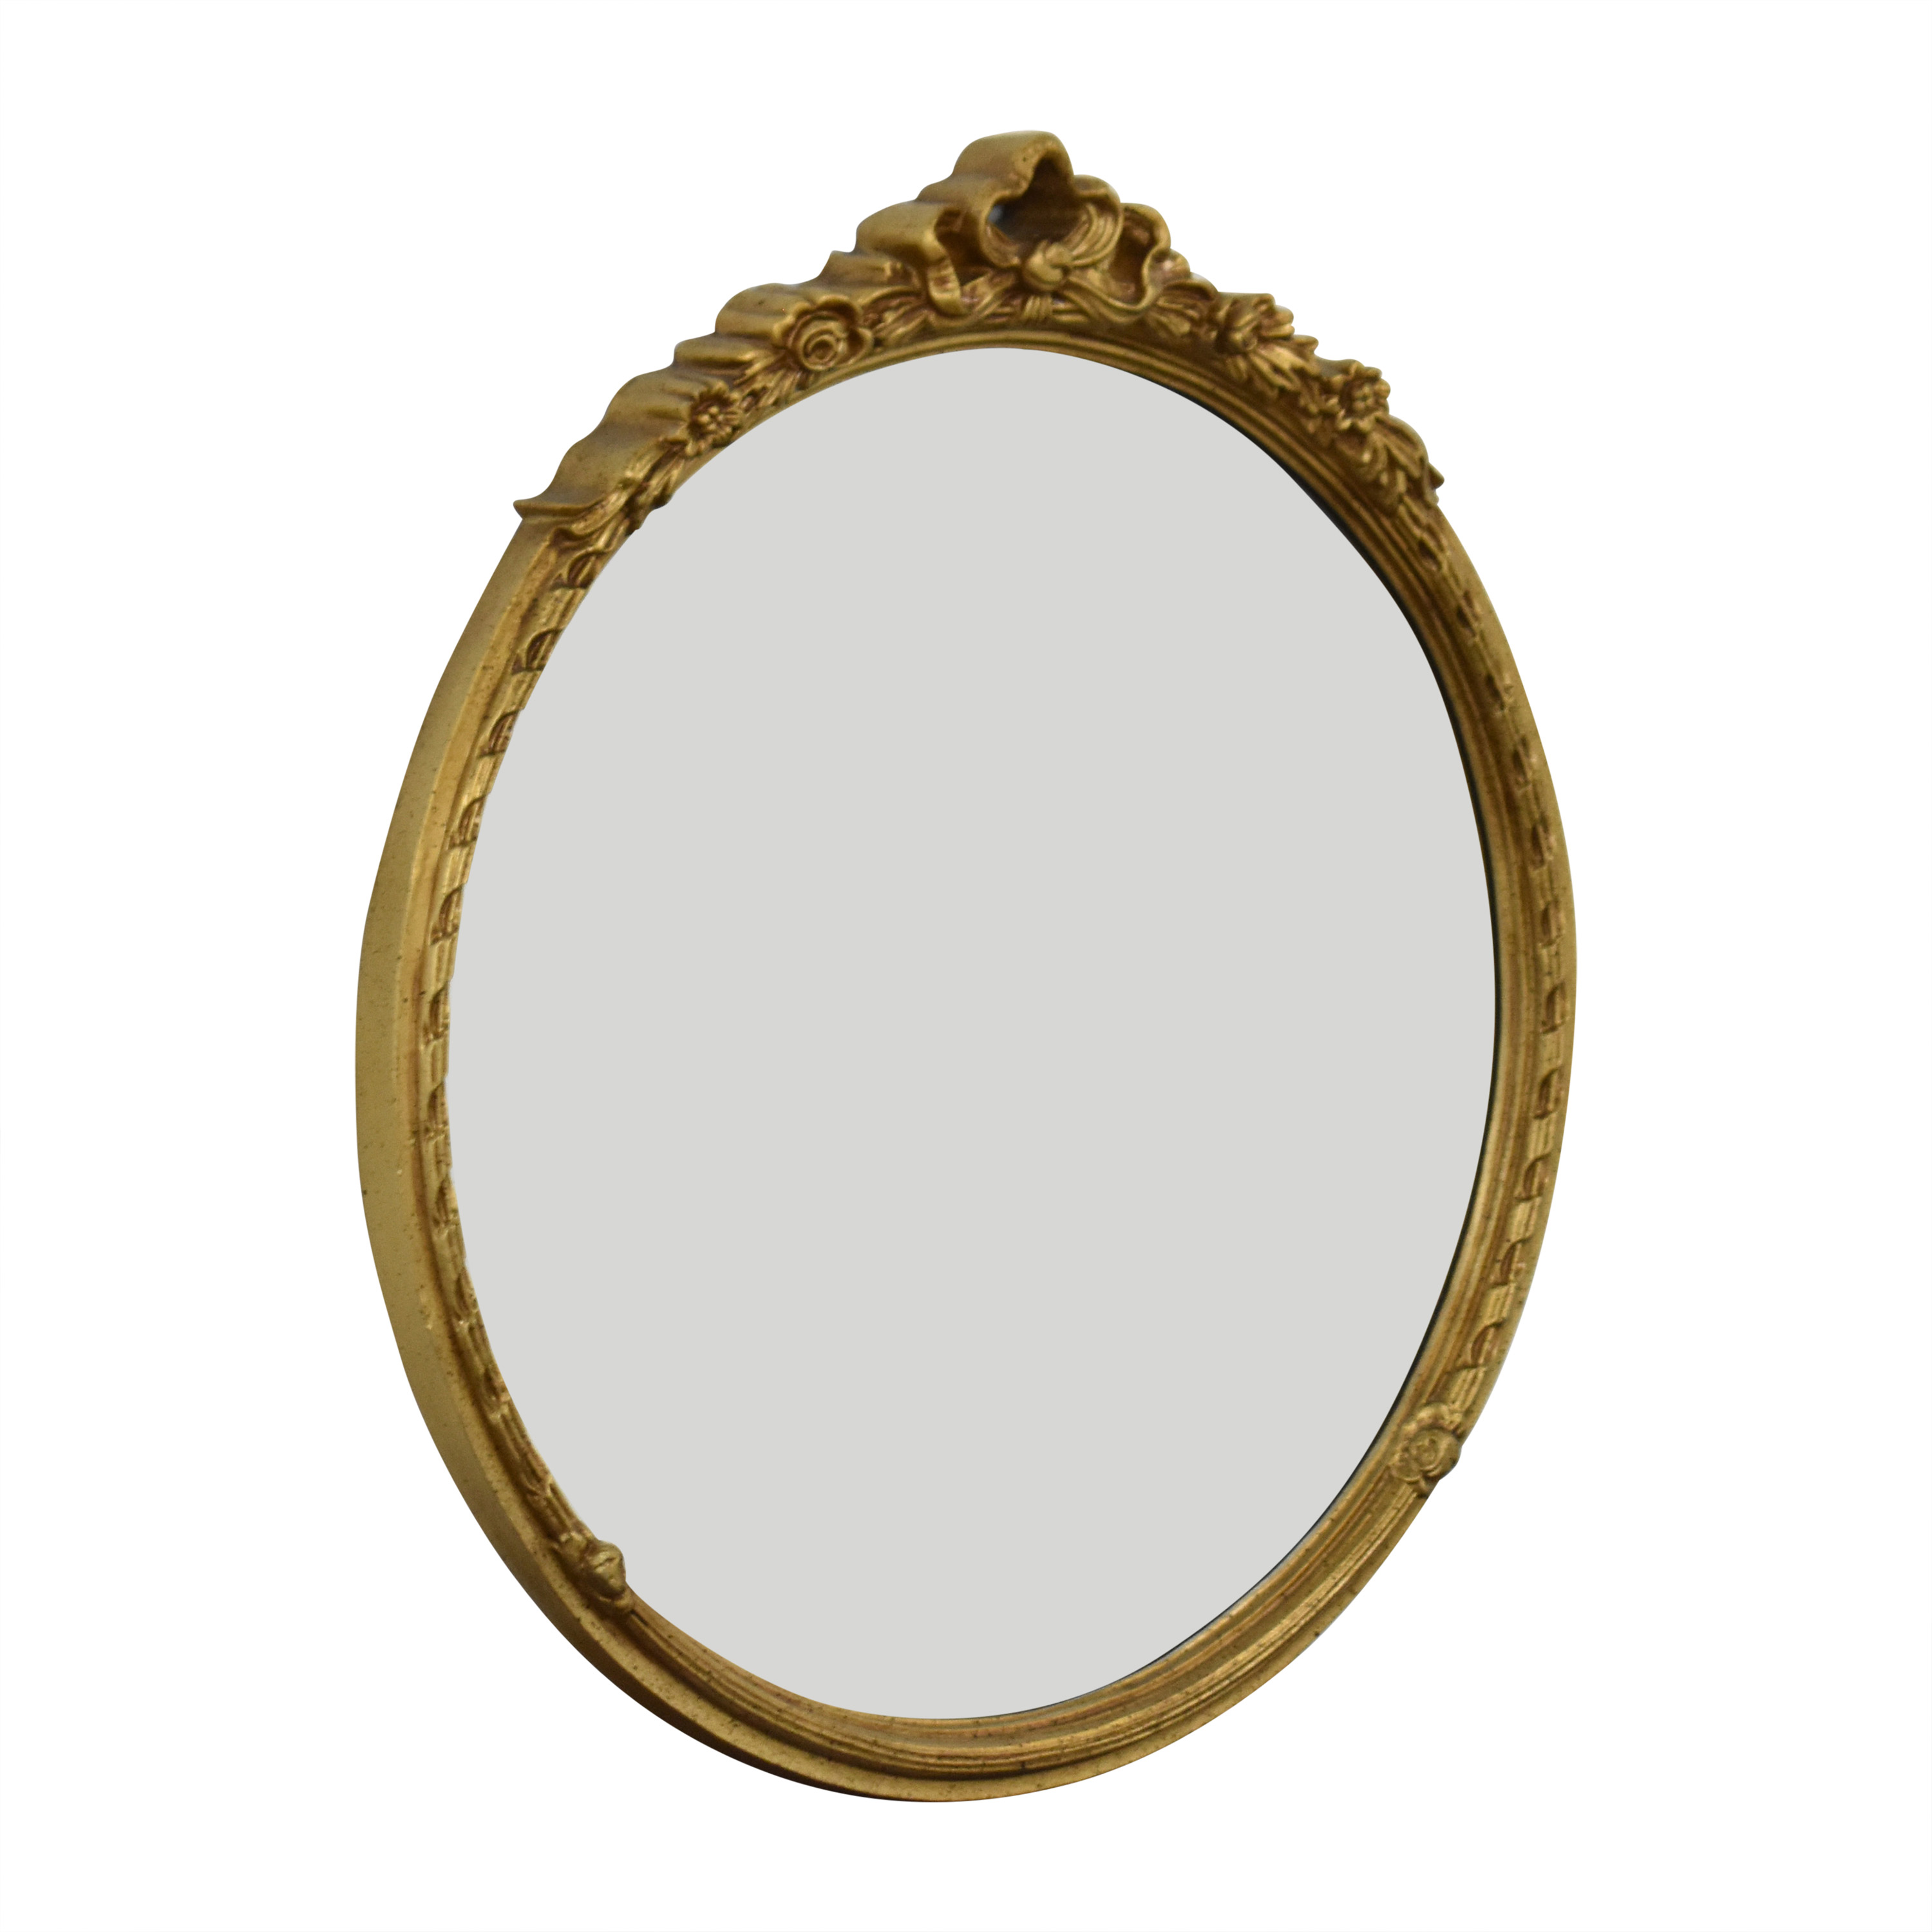 shop Fortunoff Fortunoff Round Wall Mirror with Decorative Frame online